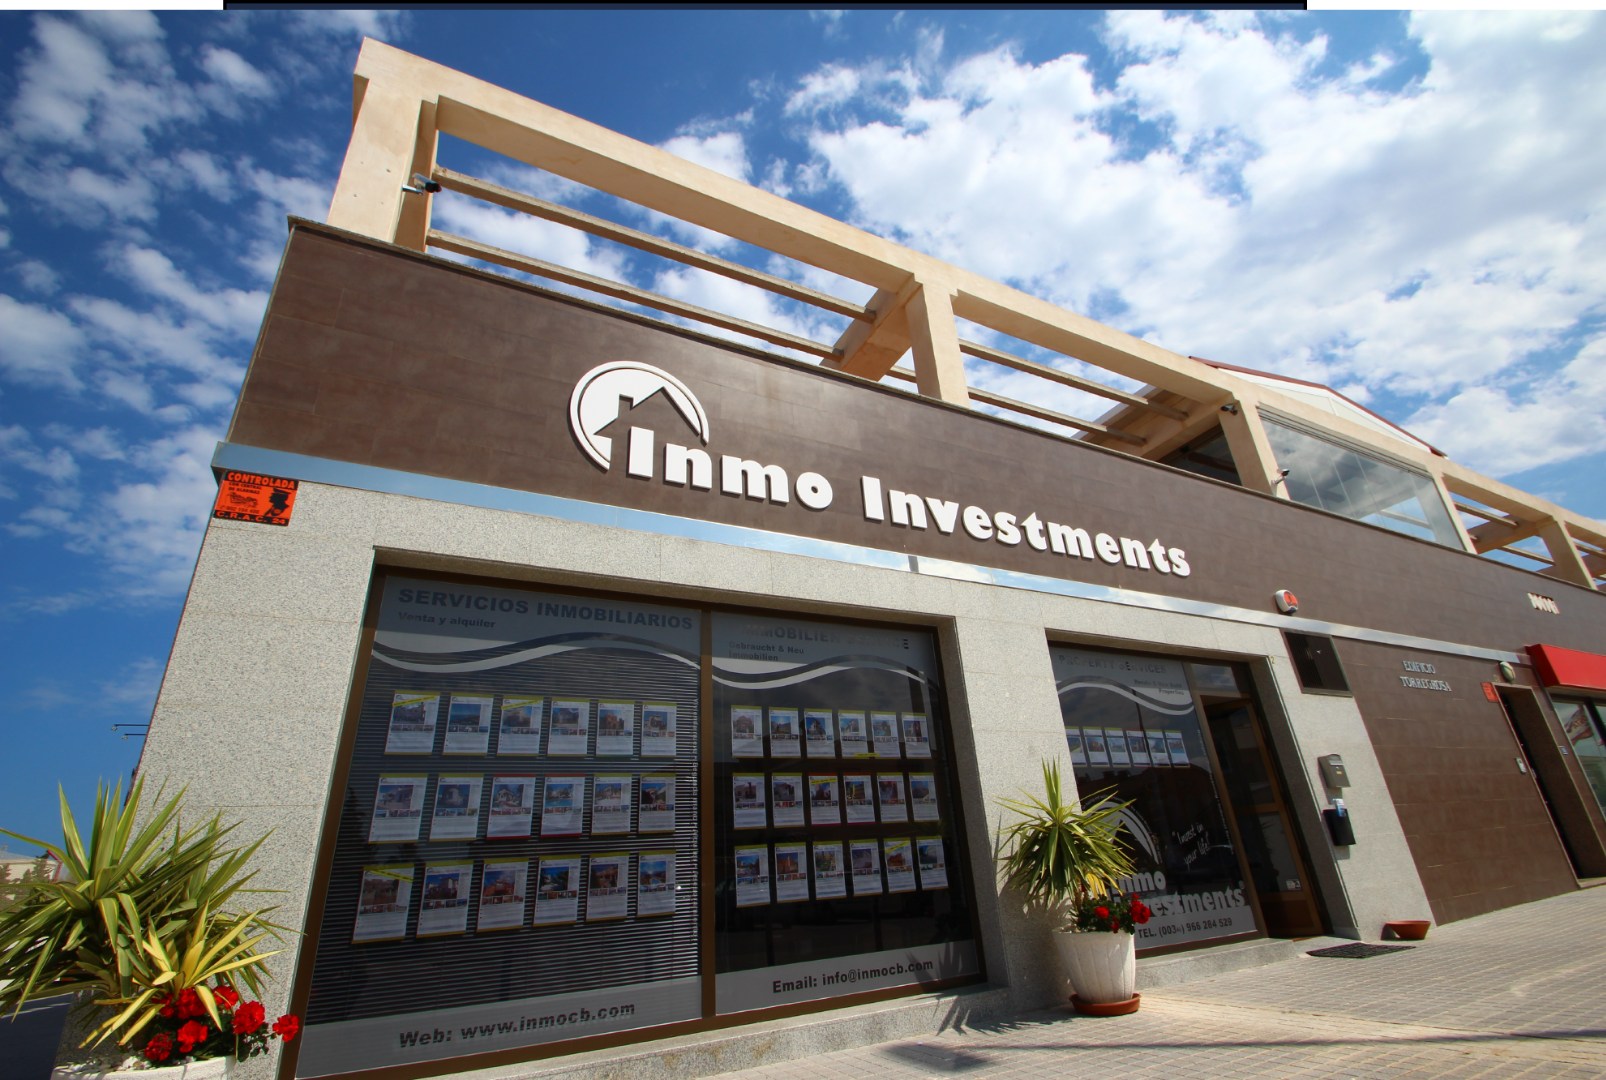 Inmo Investments